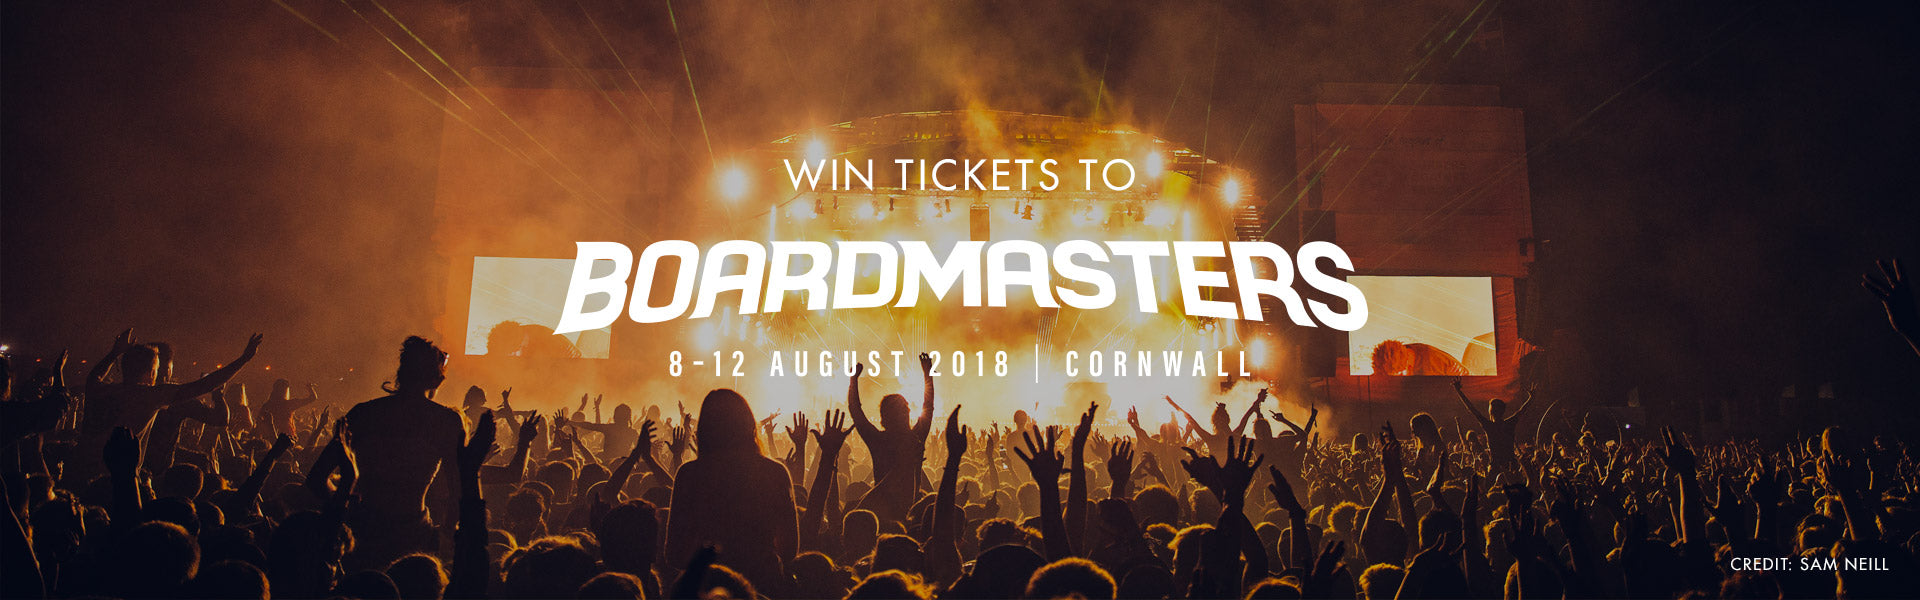 Boardmasters Competition Header